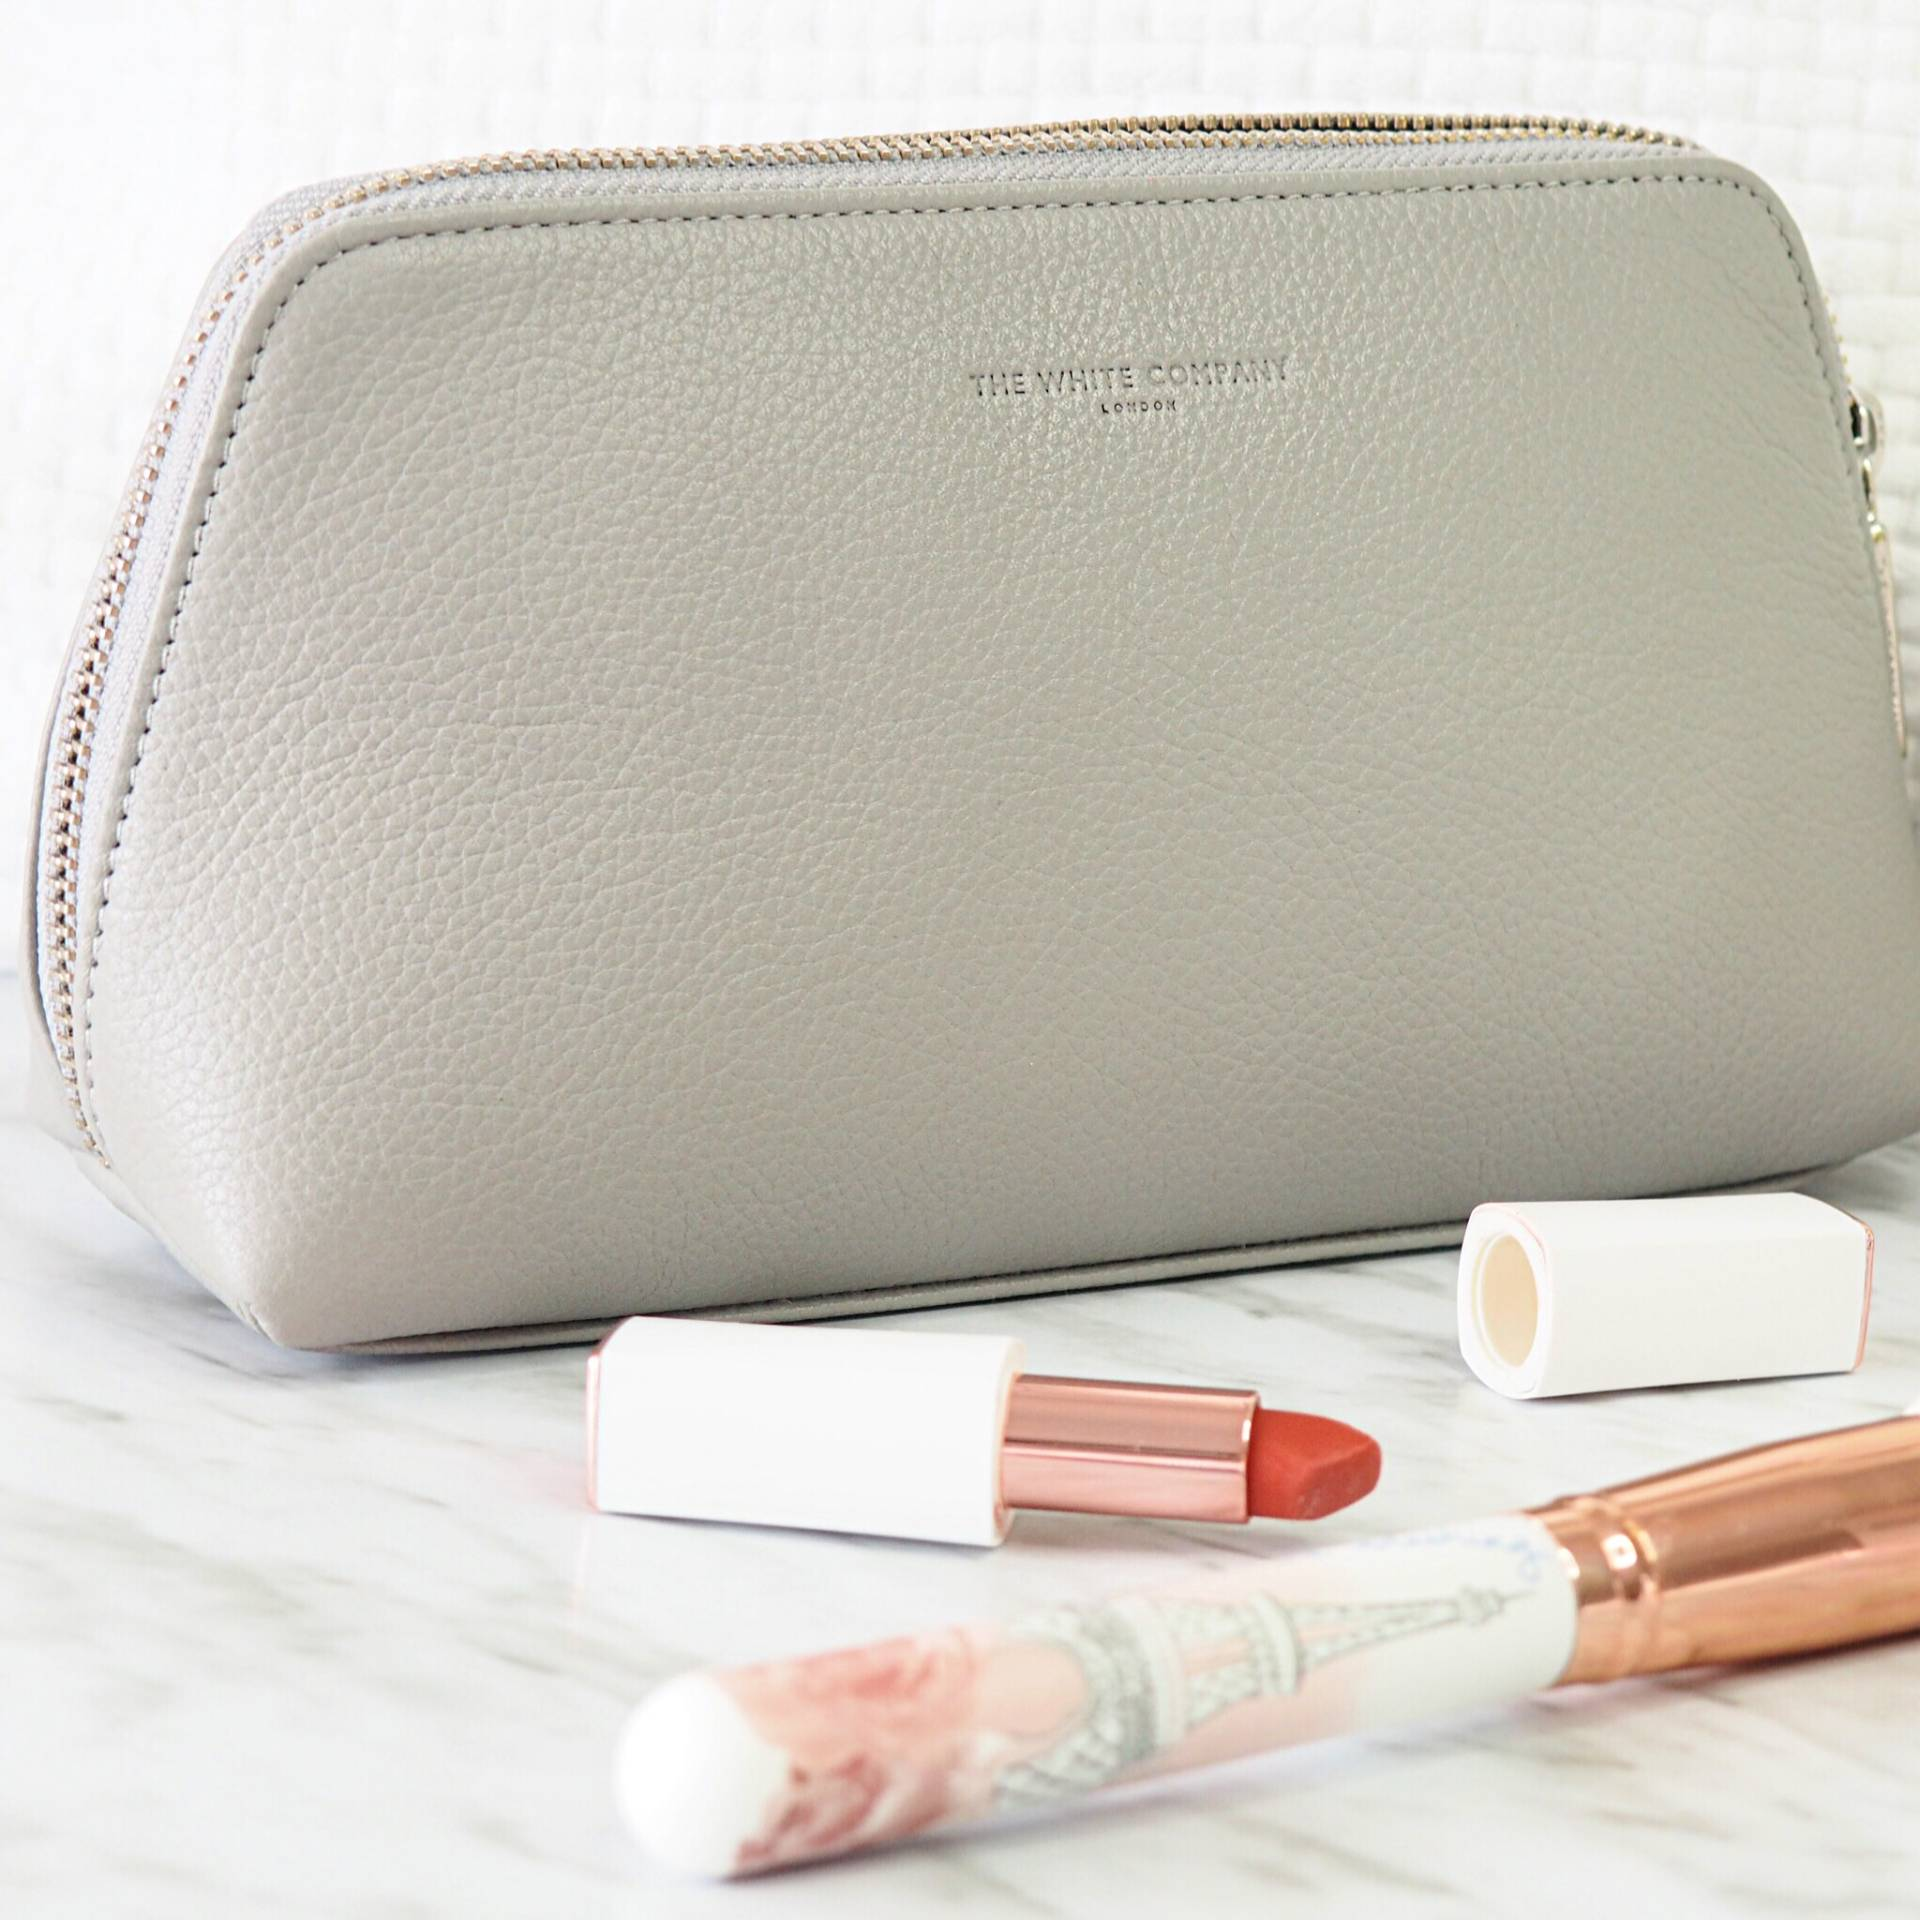 The White Company Makeup Bag